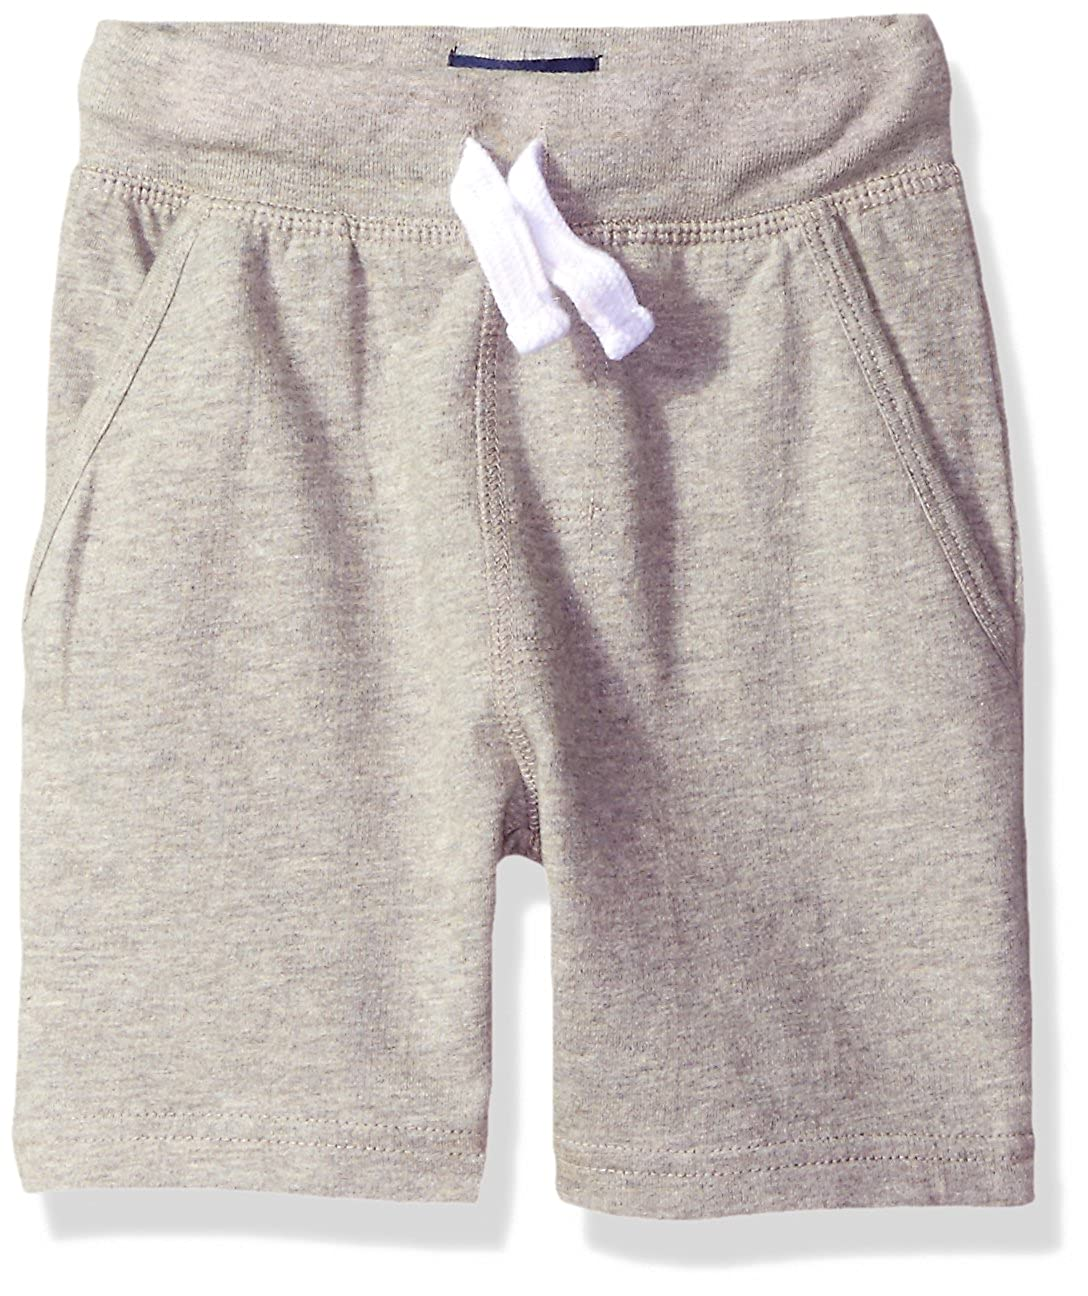 The Children's Place Boys' Gym Uniform Fleece Short 2062127 2062143